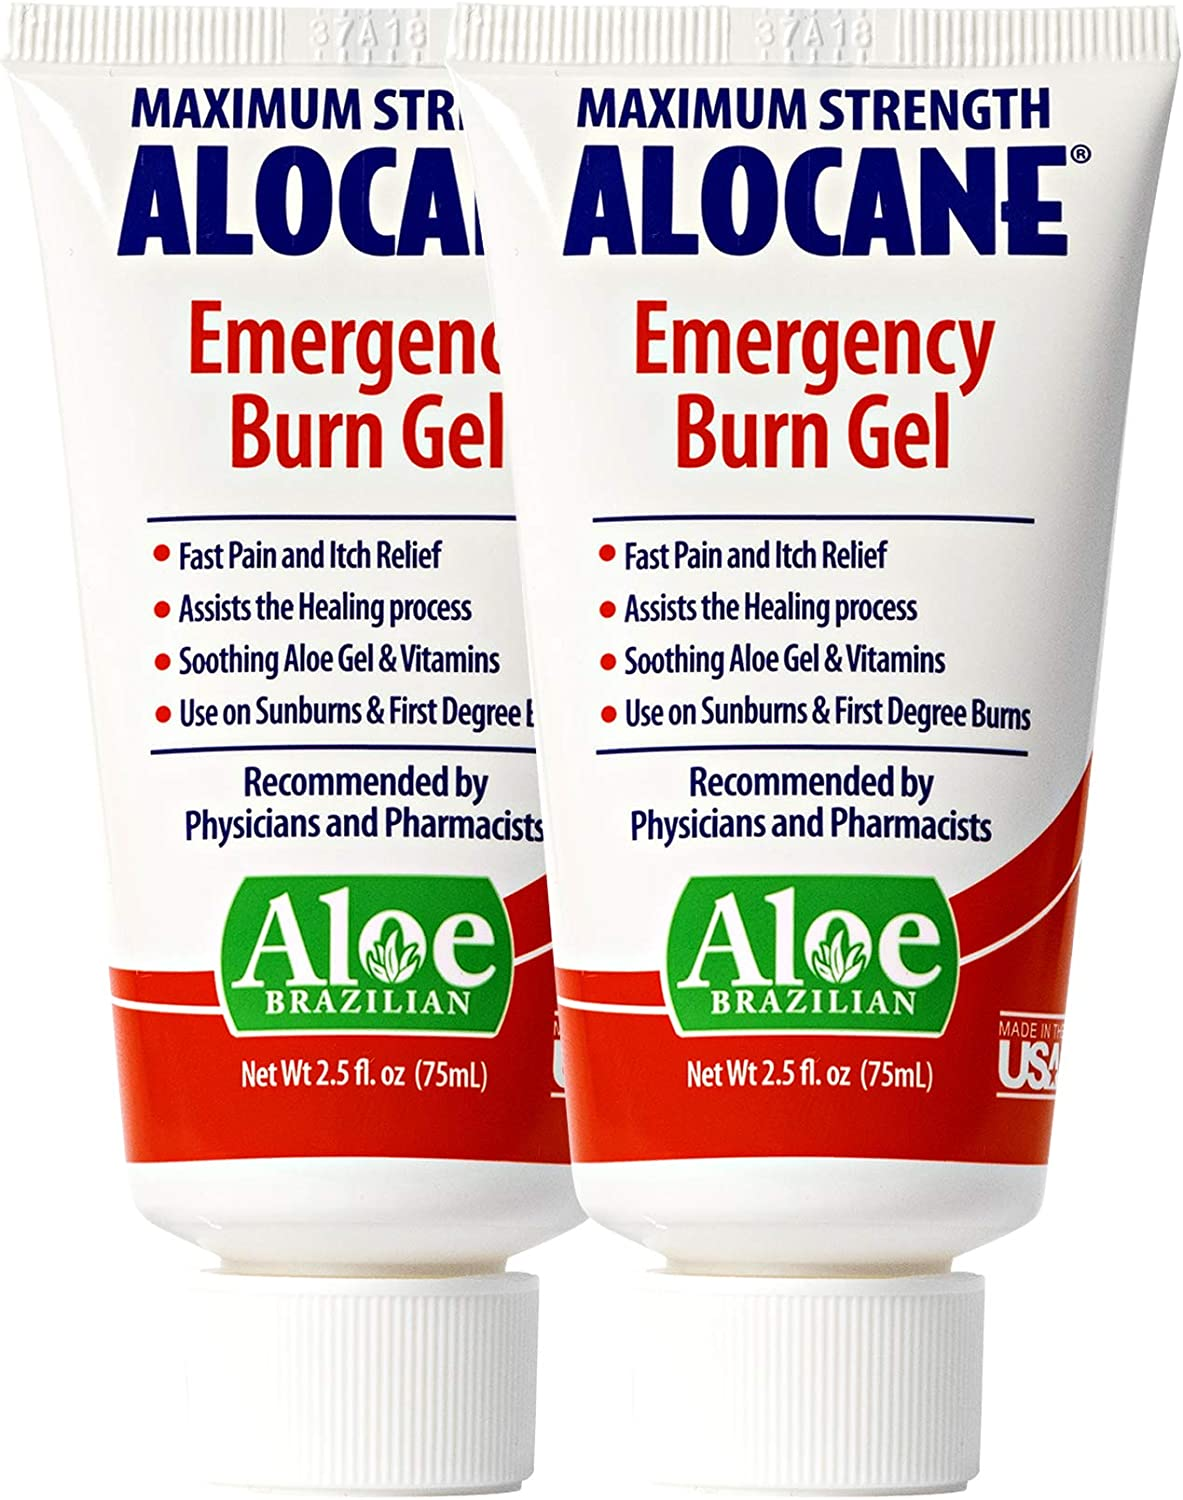 Alocane® Emergency Burn Gel, 4% Lidocaine Max Strength Fast Pain Itch Relief for Minor Burns, Sunburn, Kitchen, Radiation, Chemical, First Degree Burns, First Aid Treatment Burn Care 2.5 Fl Oz, 2 Pack: Health & Personal Care